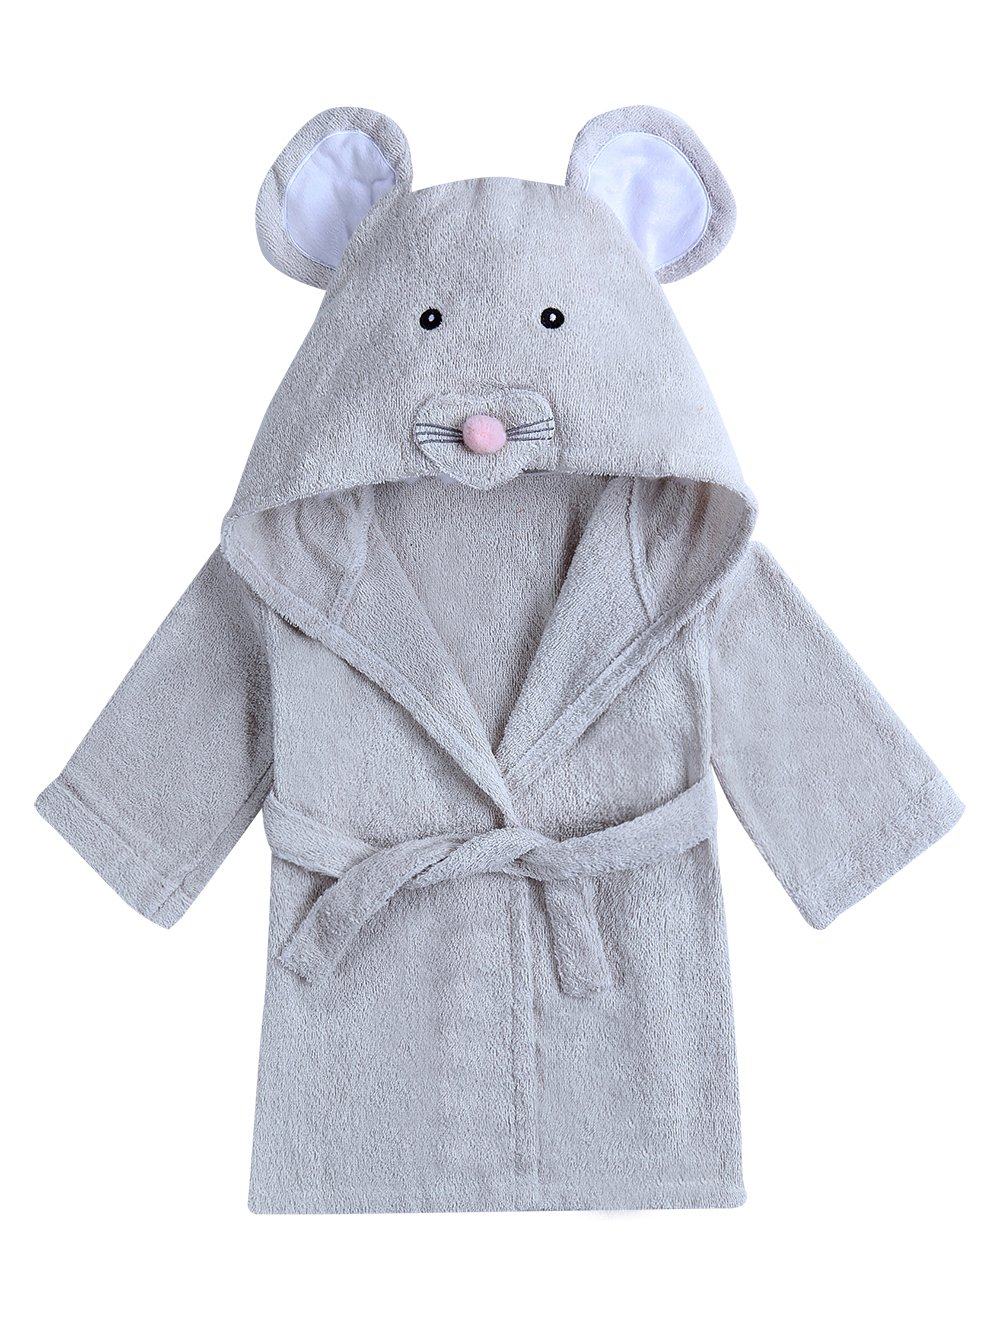 URBEAR Kids Baby Bathrobe Hooded Cartoon Animal Cotton Dressing Gown Supersoft Absorbent Sleepwear for Kids, Rabbit M 2-4 Years C80604YP-RabbitM